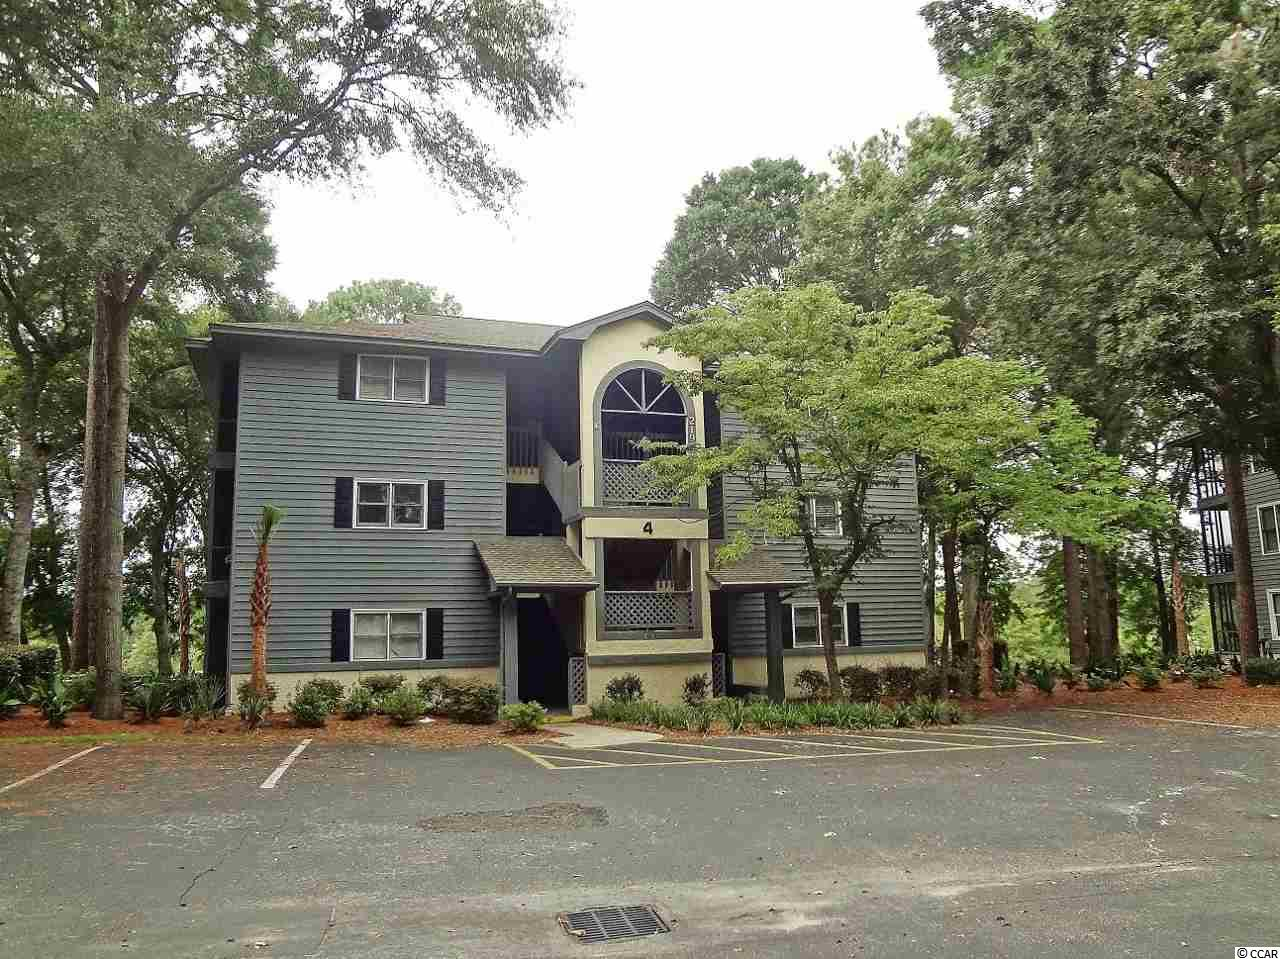 Condo MLS:1720219 Sea Trail - Sunset Beach, NC  219 Clubhouse Rd. Sunset Beach NC